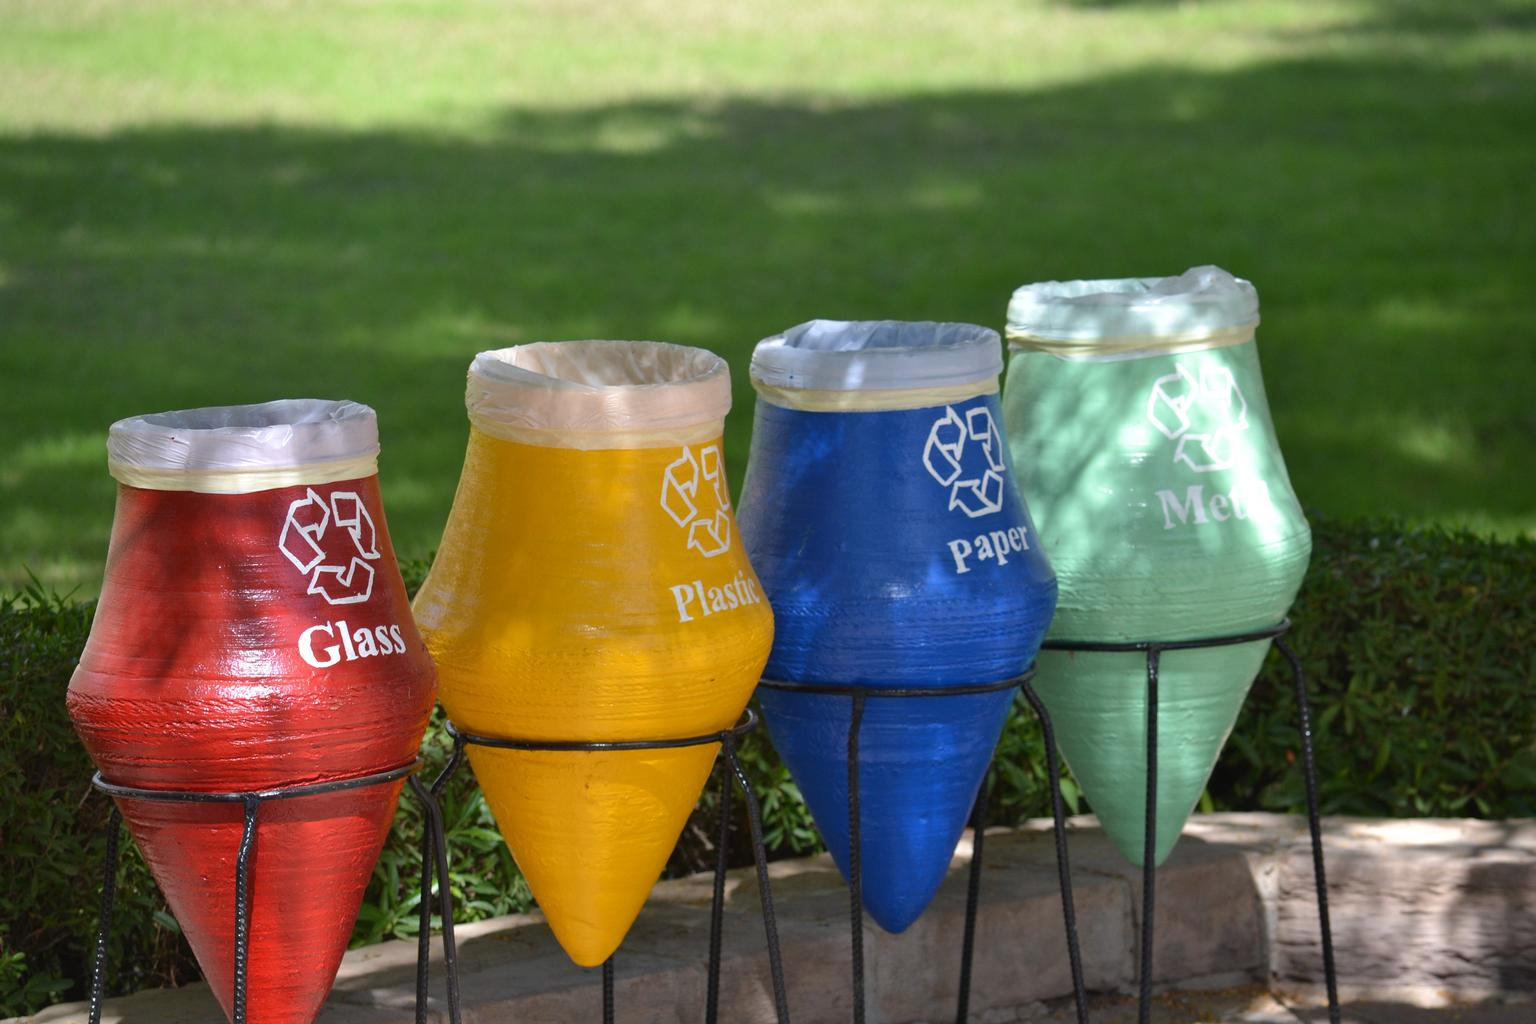 recycling waste bins in colors